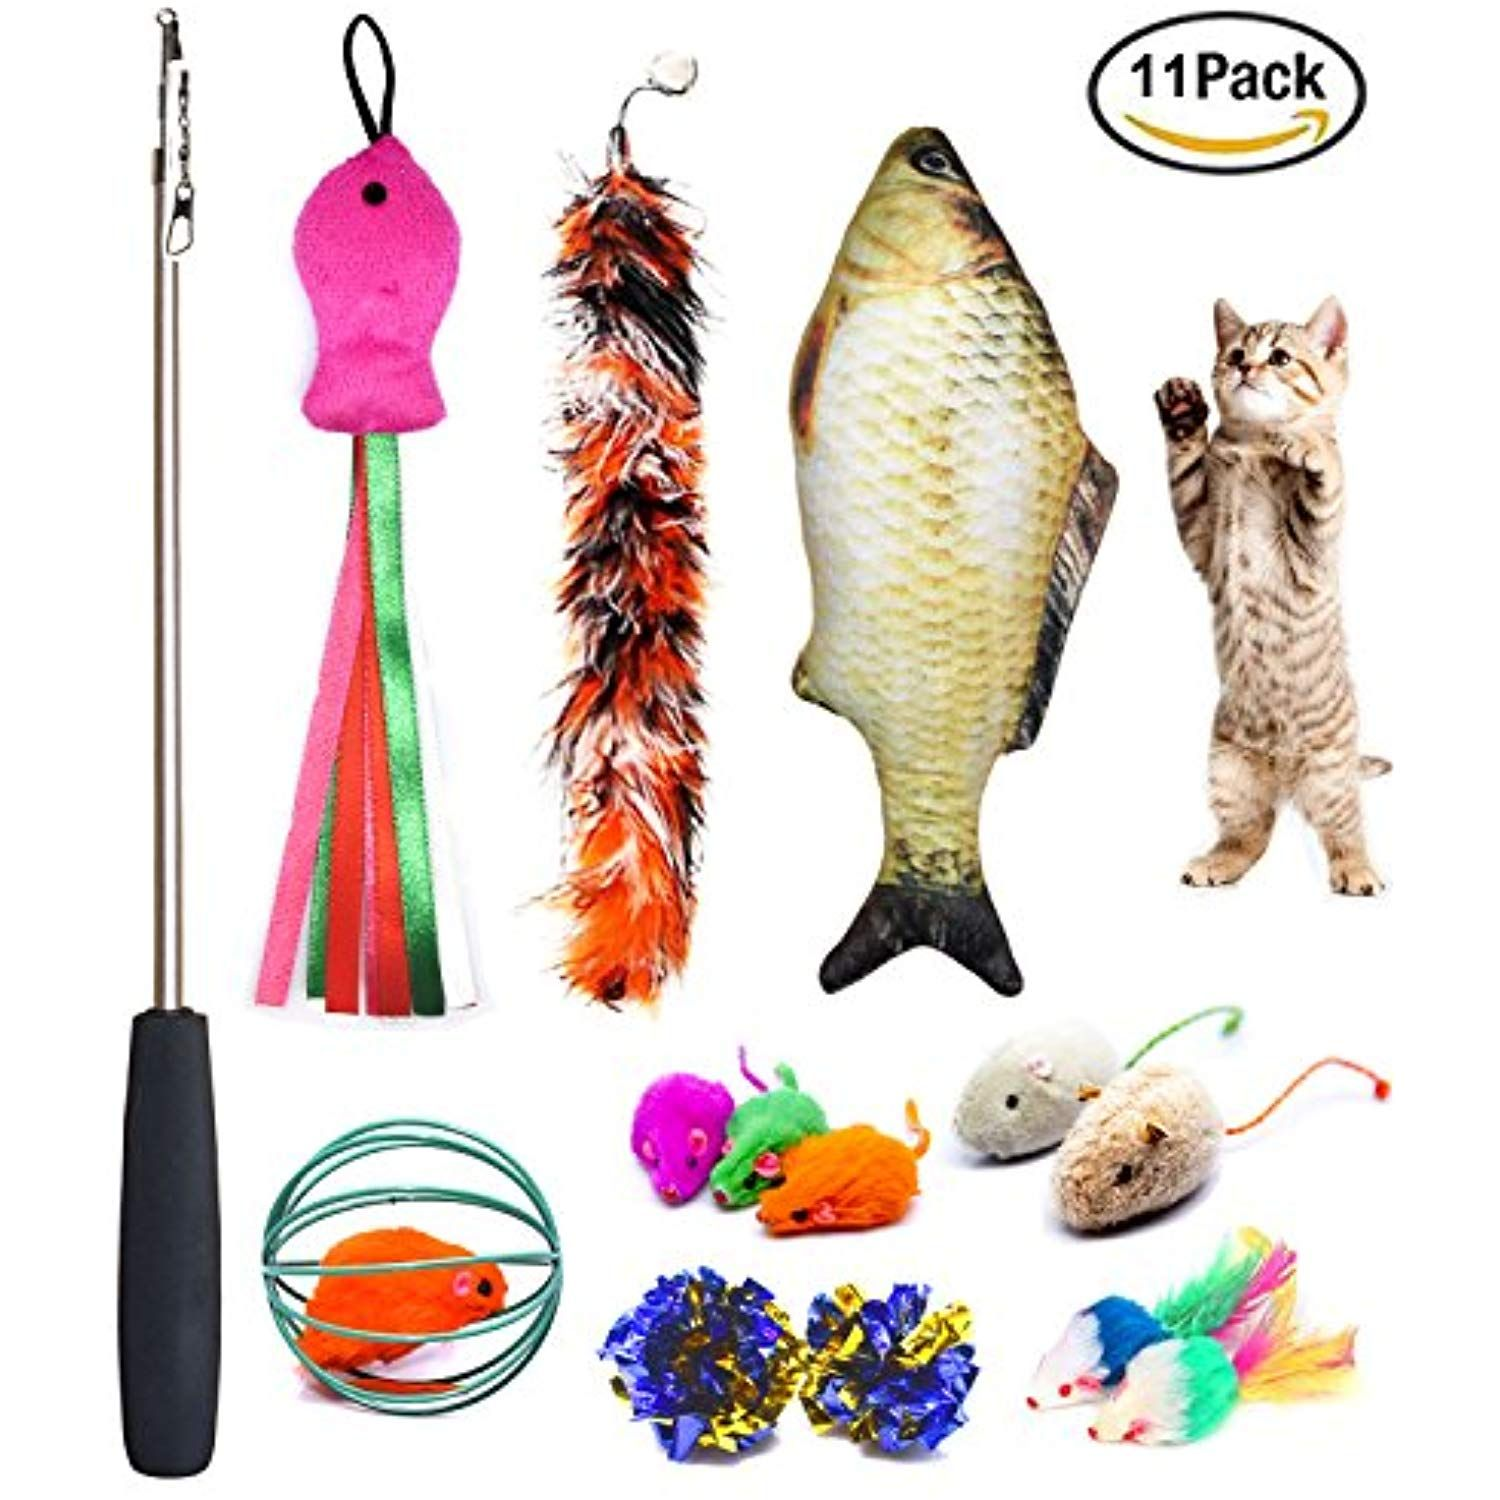 Cat Toys Set Cat Retractable Teaser Wand Catnip Fish Interactive Cat Feather Toy Mylar Crincle Balls Two Cotton Mice Two F Diy Cat Toys Pet Toys Cat Toys